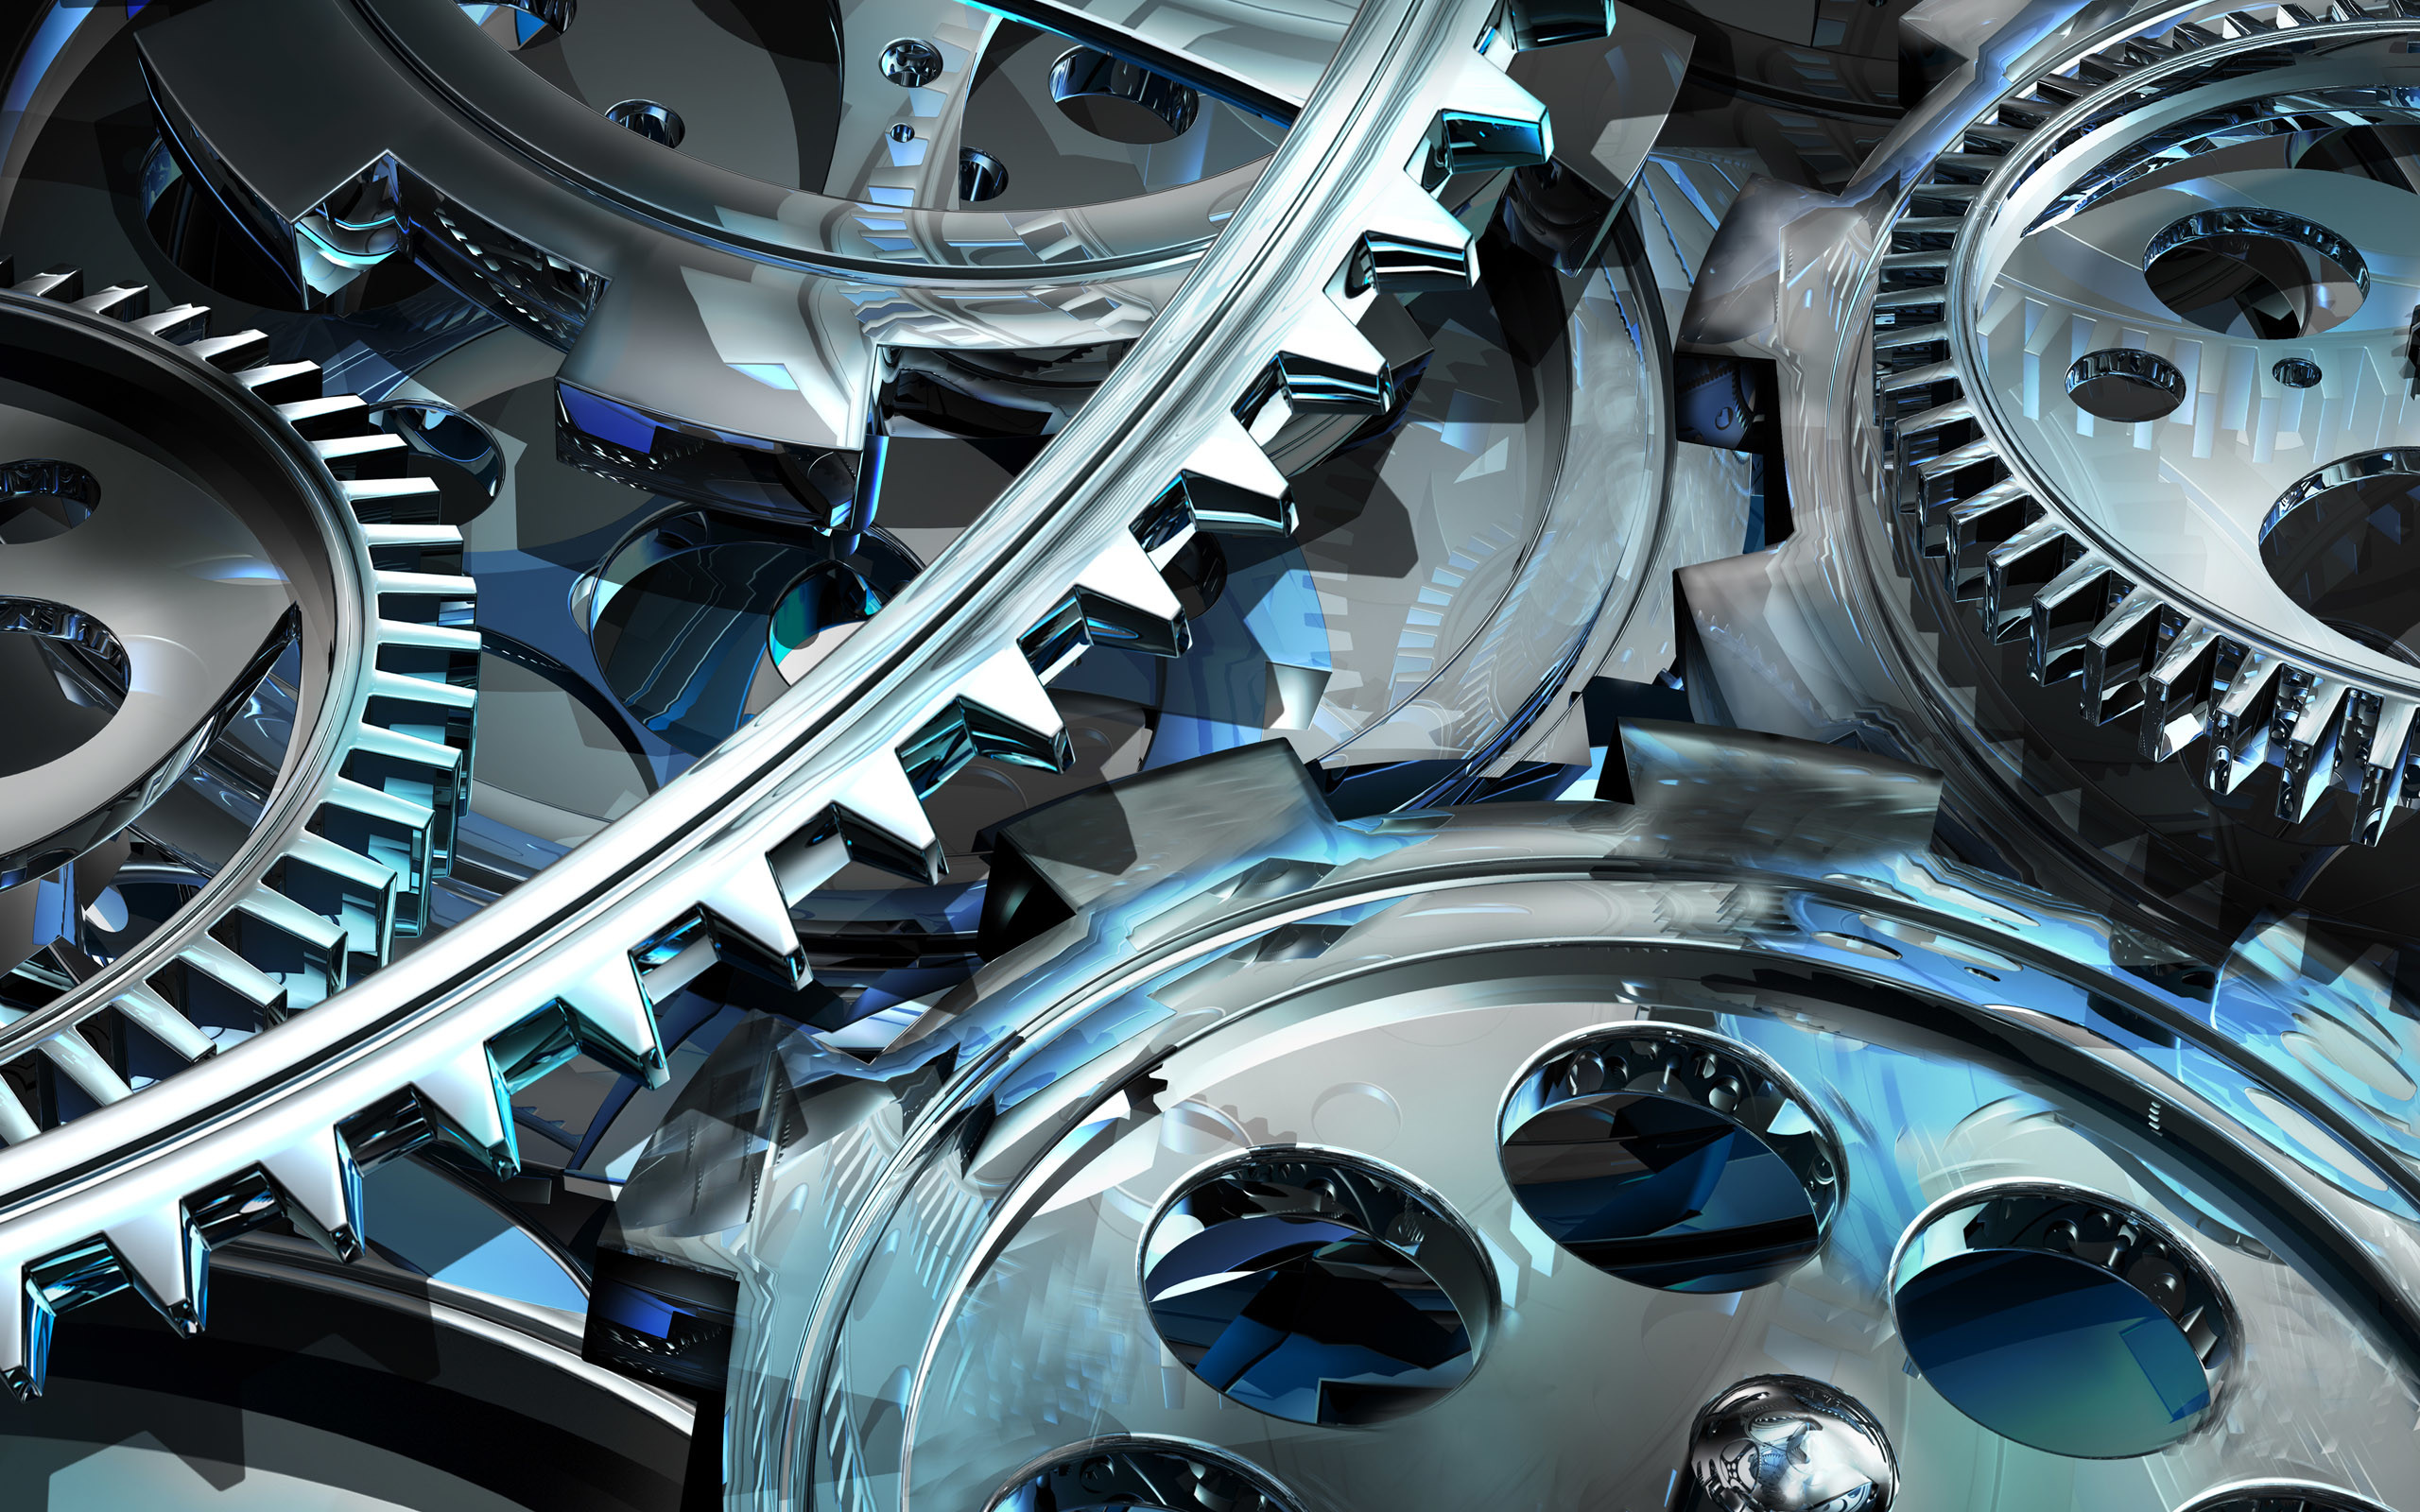 Mechanical Engineering wallpaper   ideas for graphics   Pinterest   Mechanical  engineering and Wallpaper